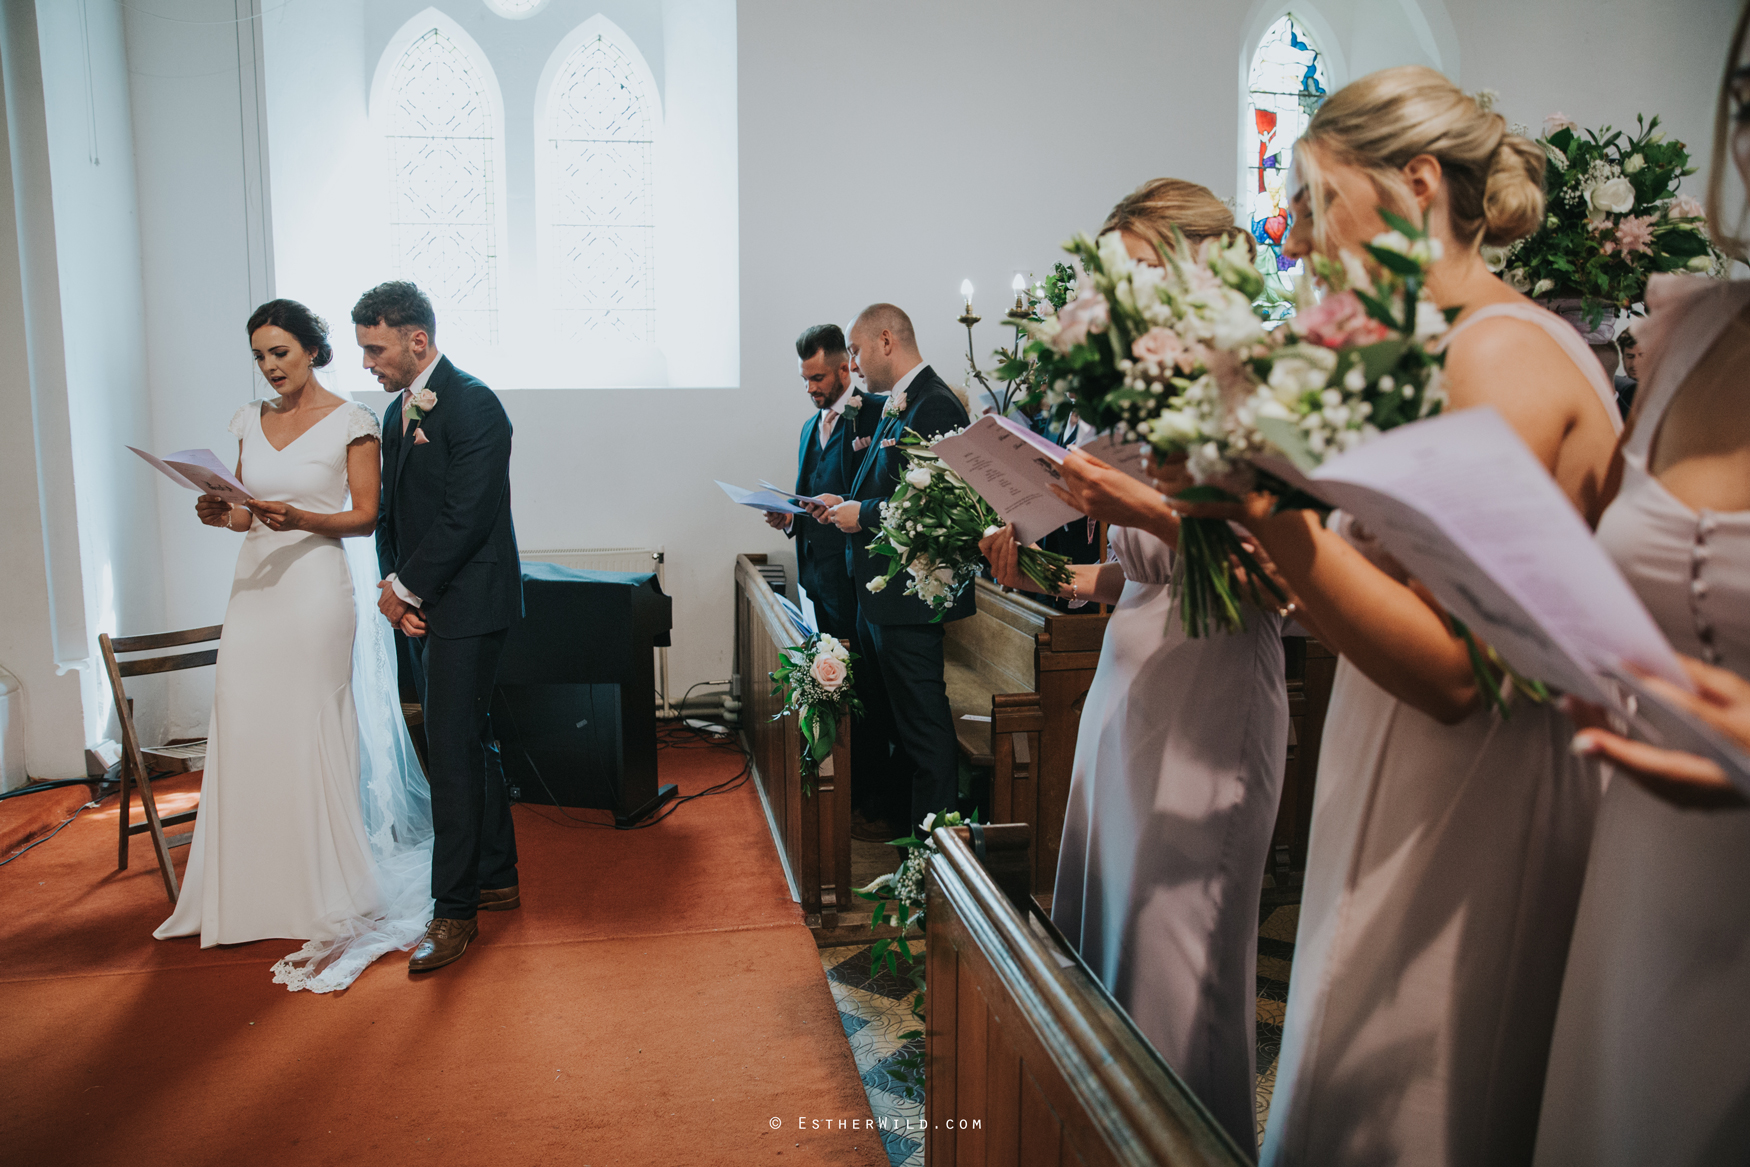 Wootton_Wedding_Copyright_Esther_Wild_Photographer_IMG_1109.jpg